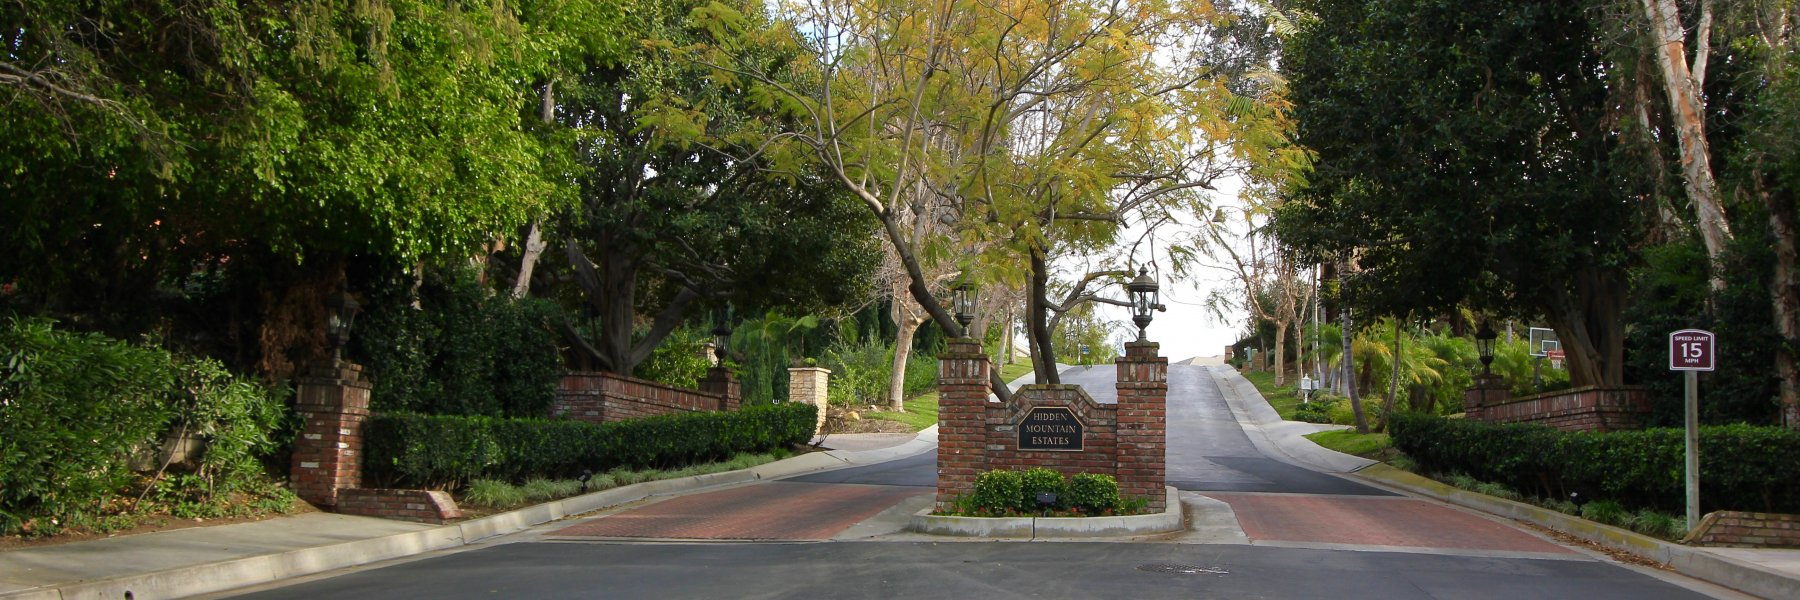 Hidden Mountain is a community of homes in San Juan Capistrano California